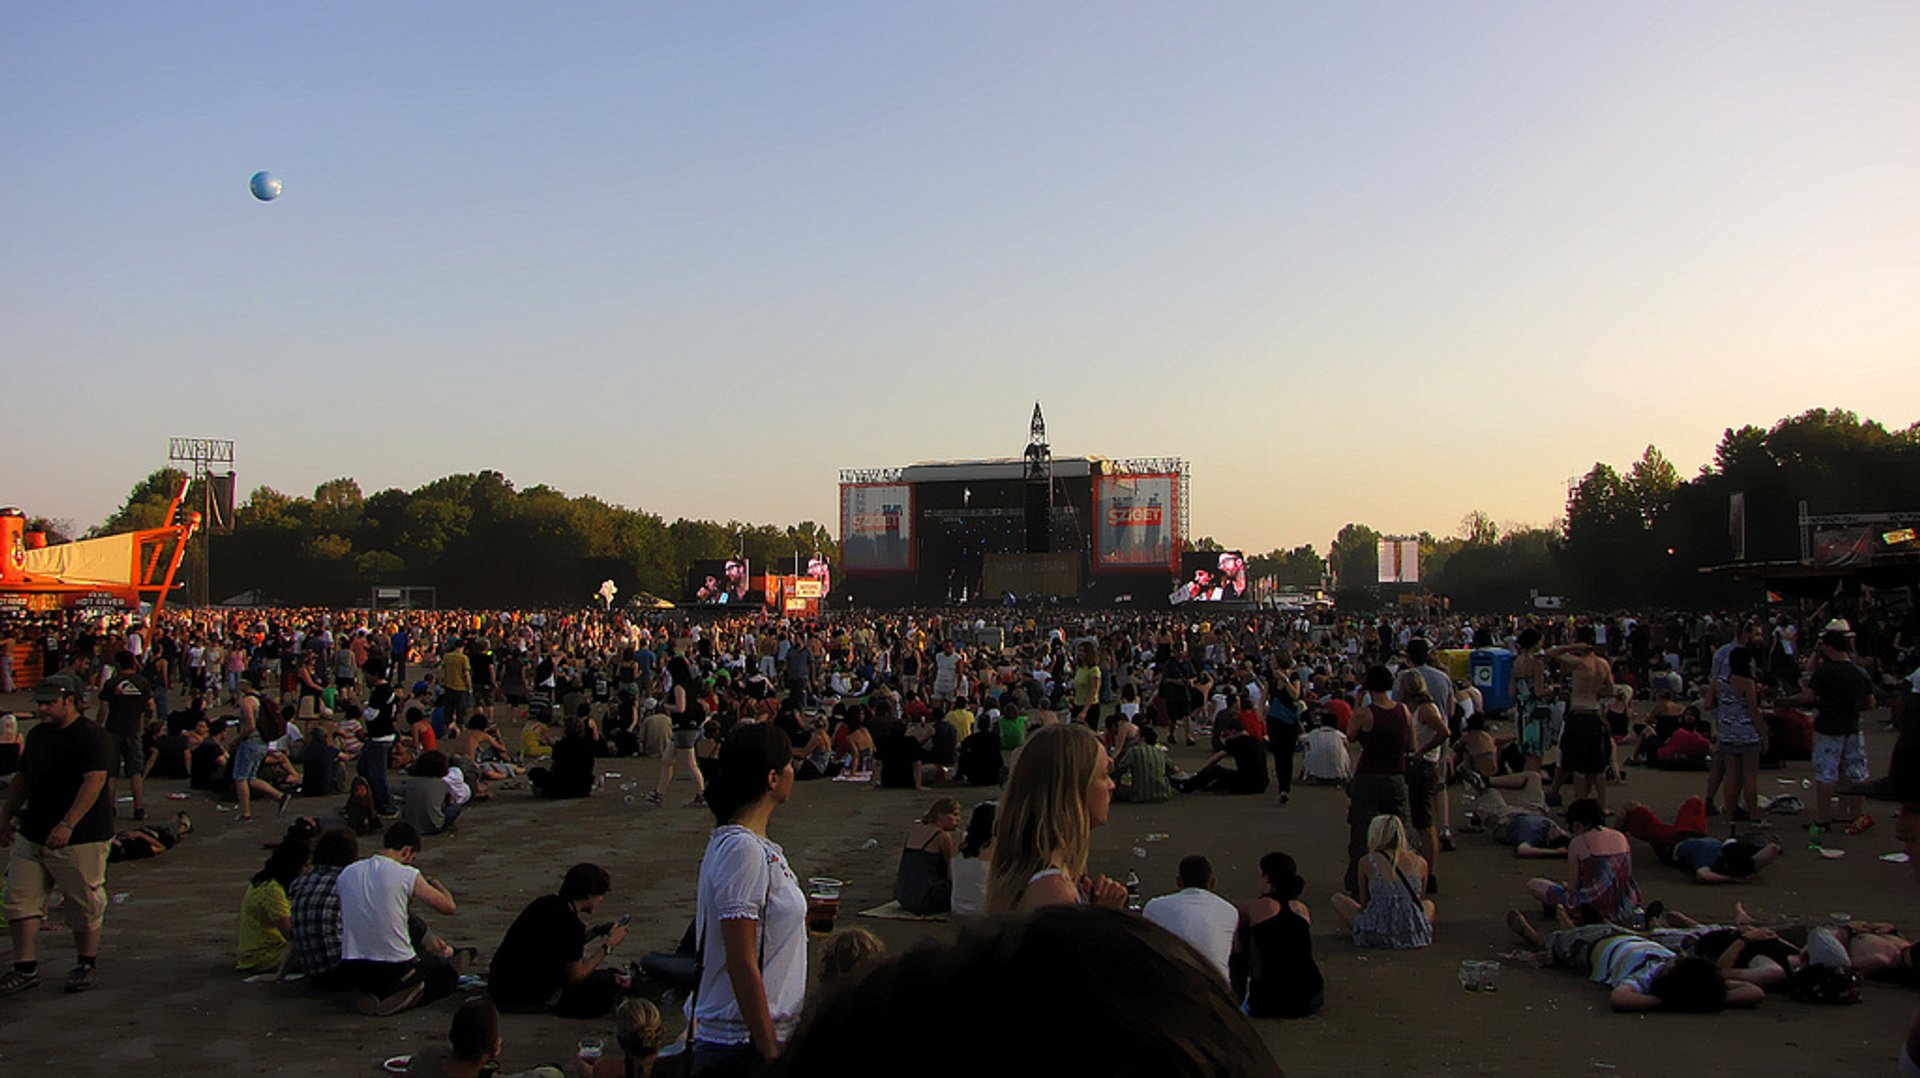 Best time to see Sziget Festival in Hungary 2019